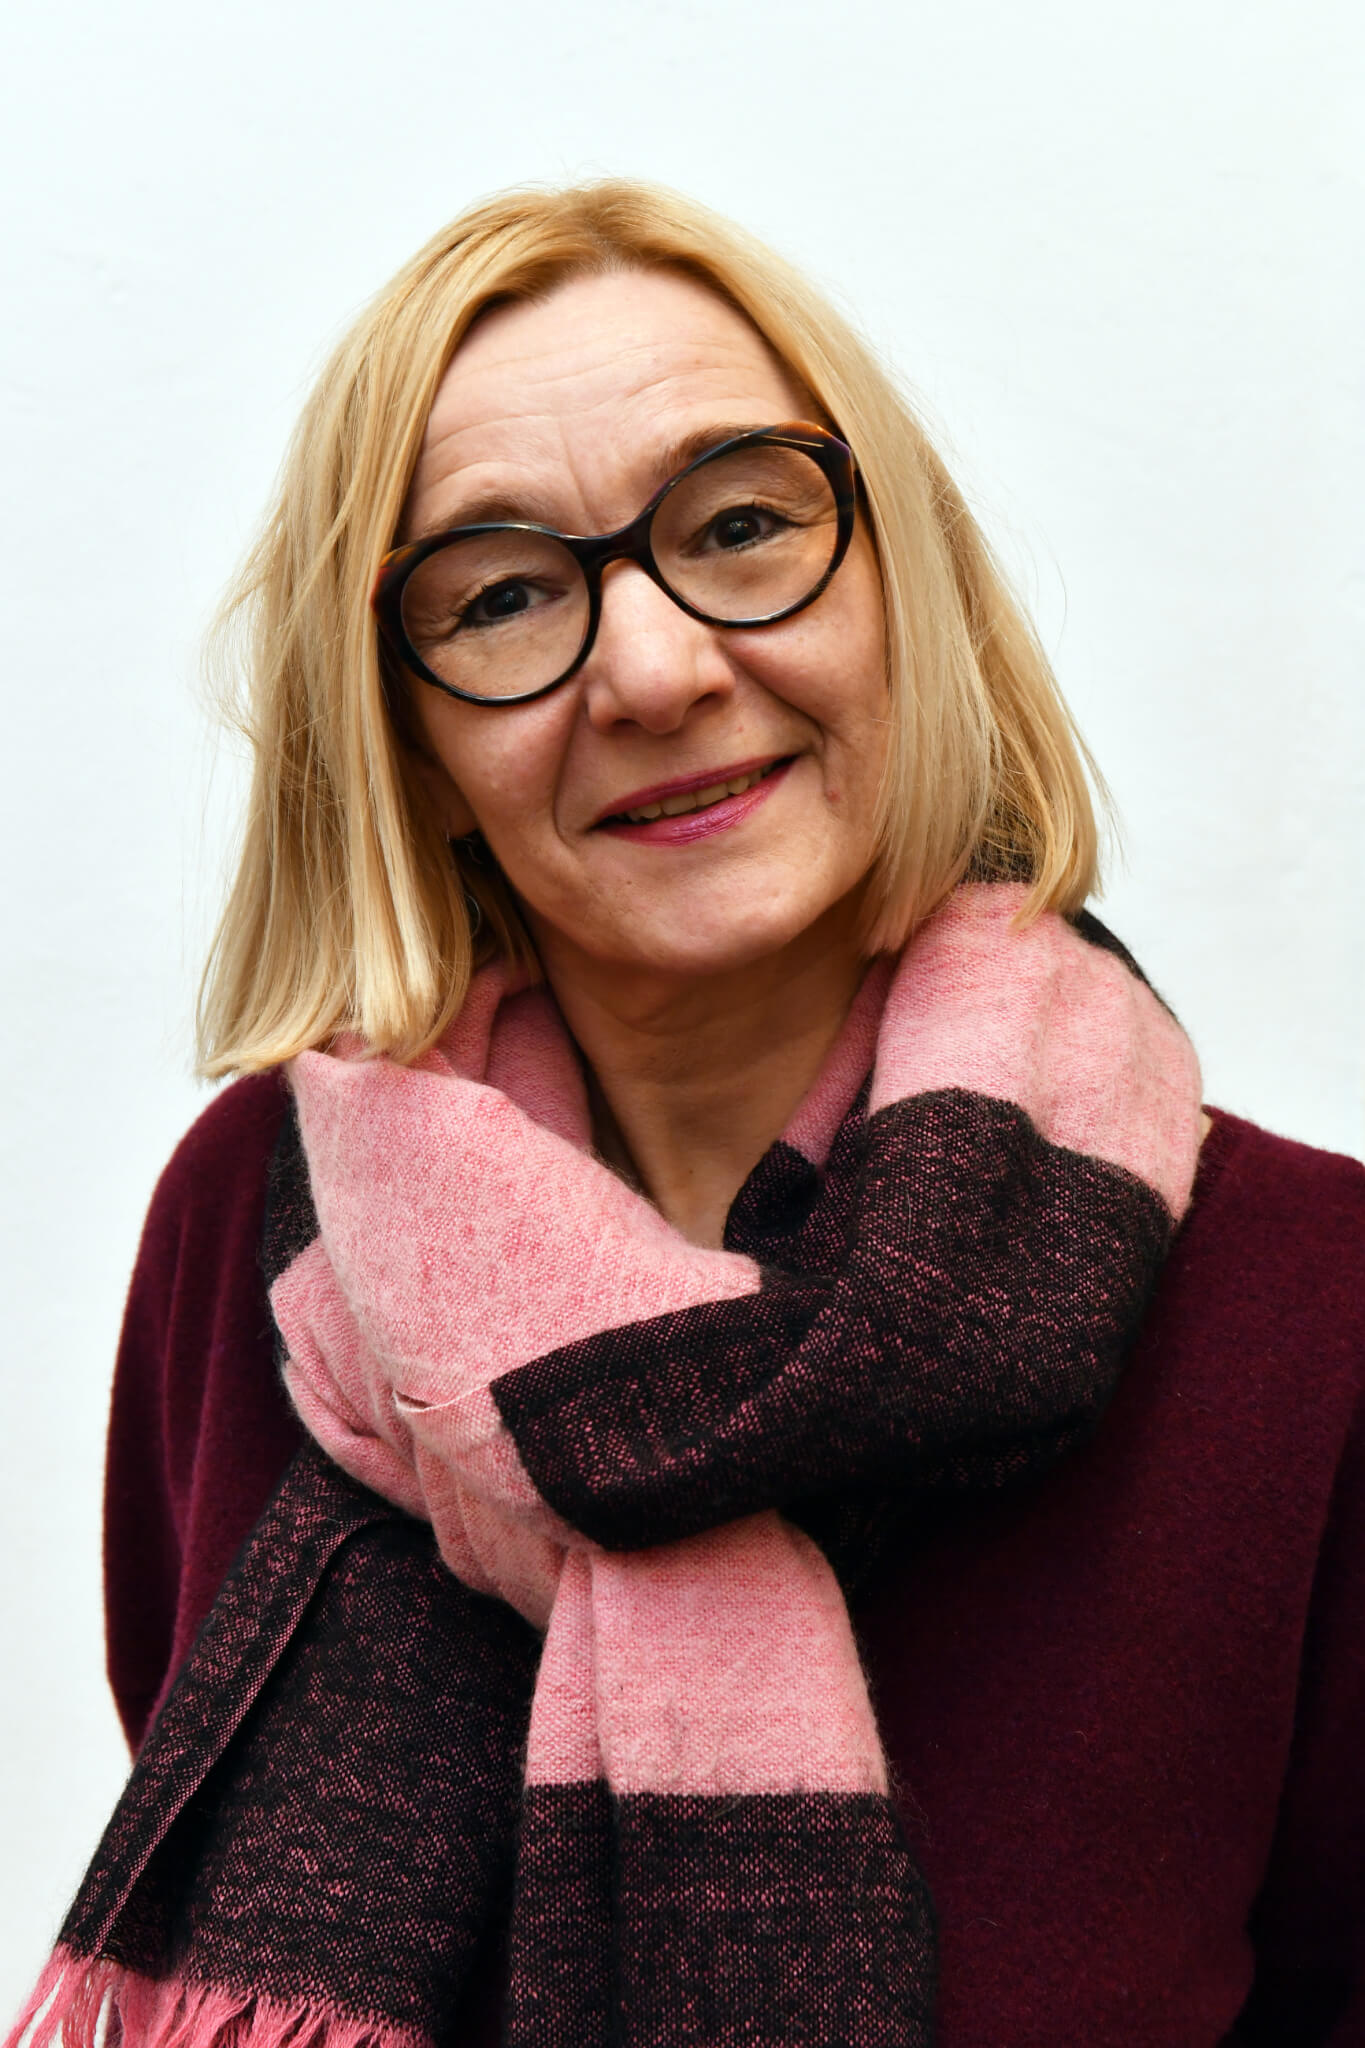 Monique Schaap